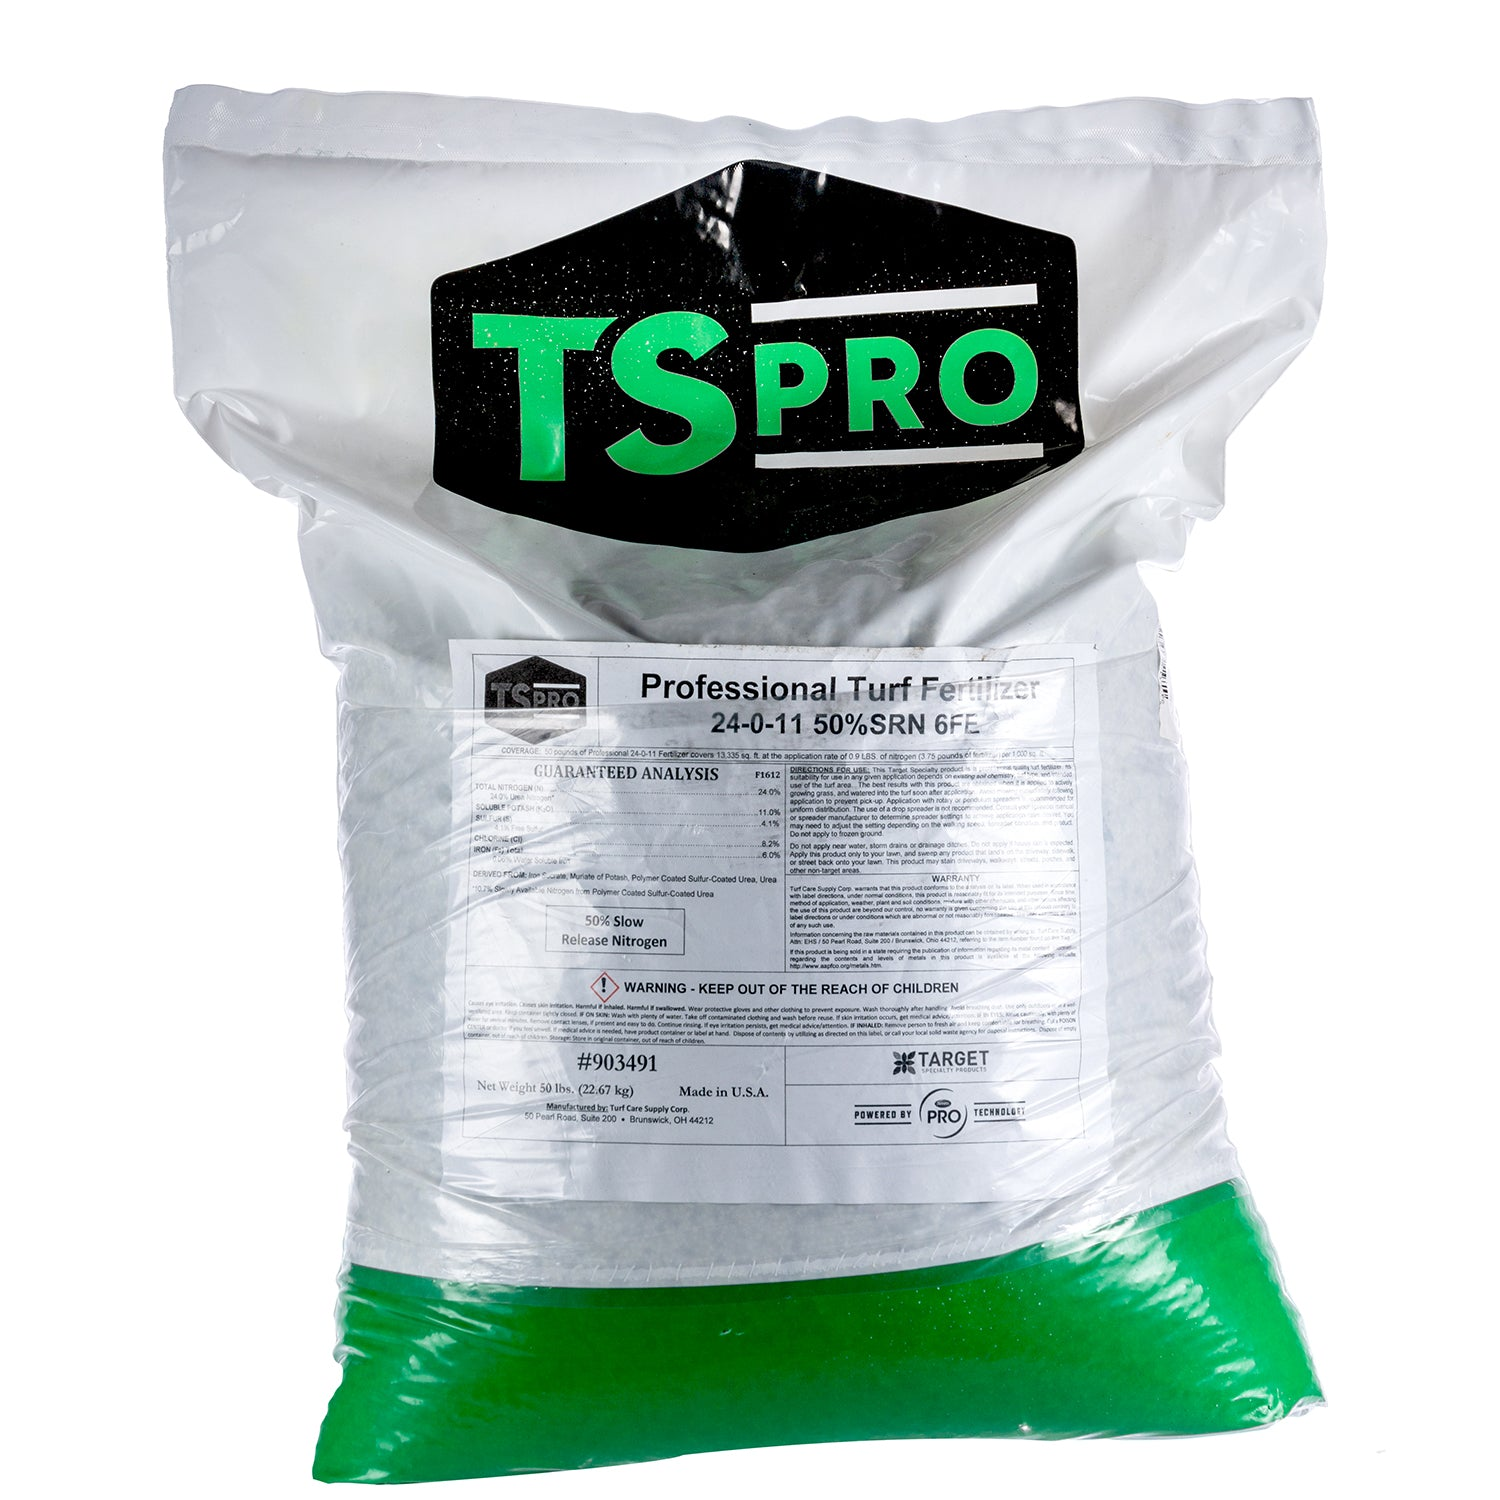 24-0-11 50% Slow Release Professional Turf Fertilizer